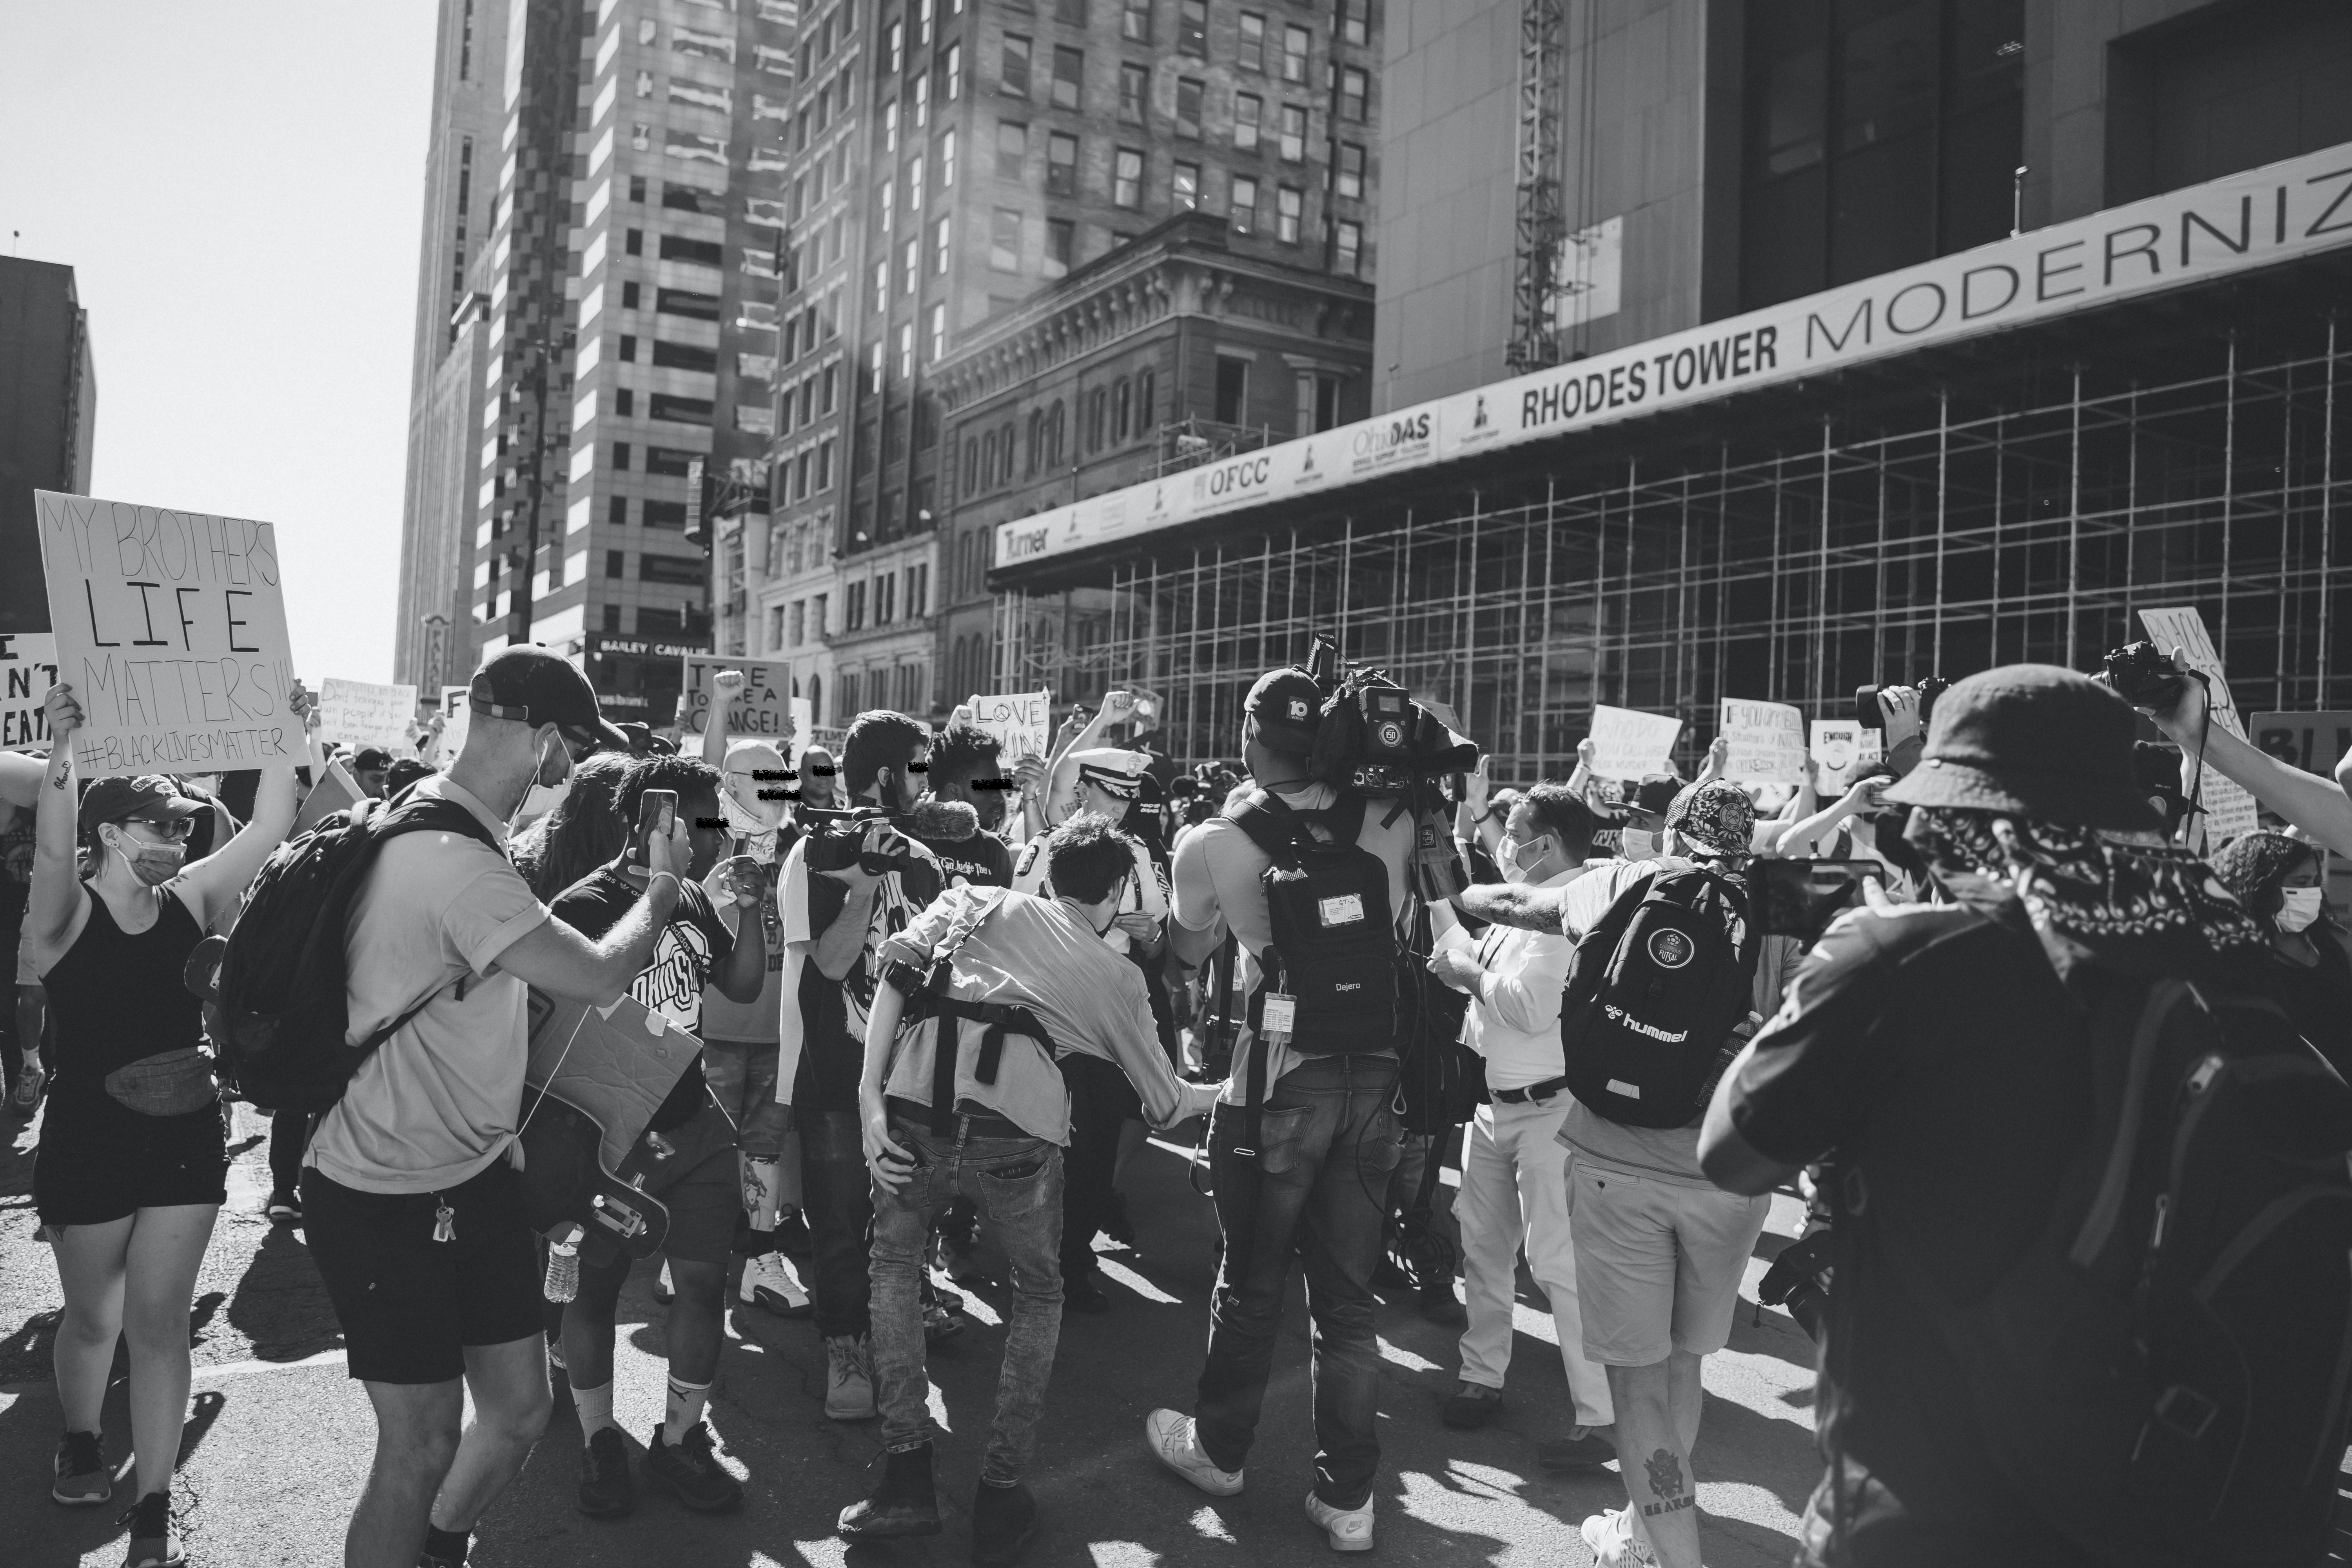 A black and white photograph. The bottom middle half of the image has a group of protestors with camera equipment and surrounding a police officer. BLM protesters with signs encircle the protestors with cameras. The top half of the image shows buildings in downtown Columbus.